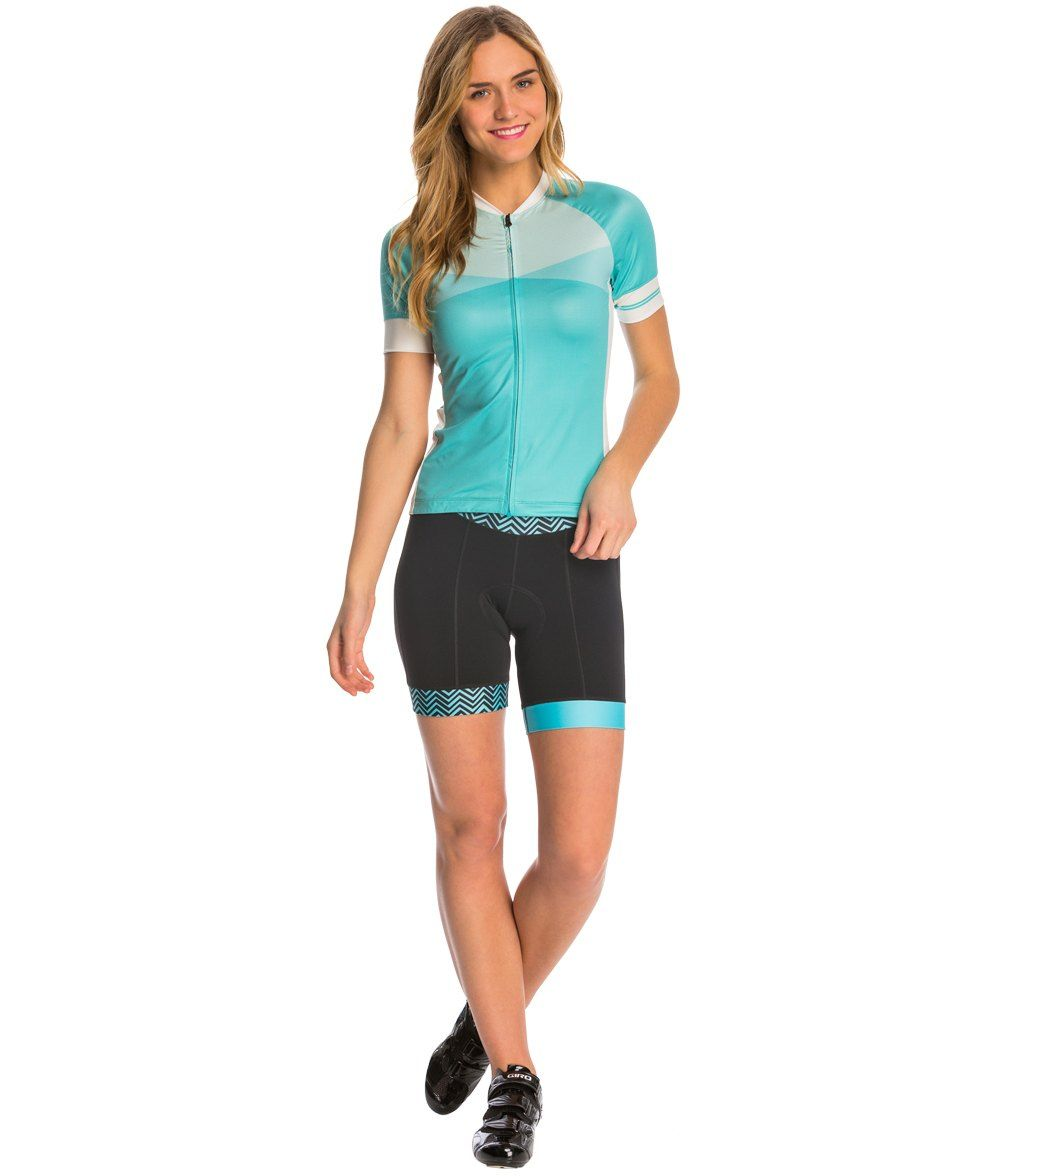 Shebeest Women s Triple S Ultimo Switchback Cycling Shorts at  SwimOutlet.com – The Web s most 64dcf650d